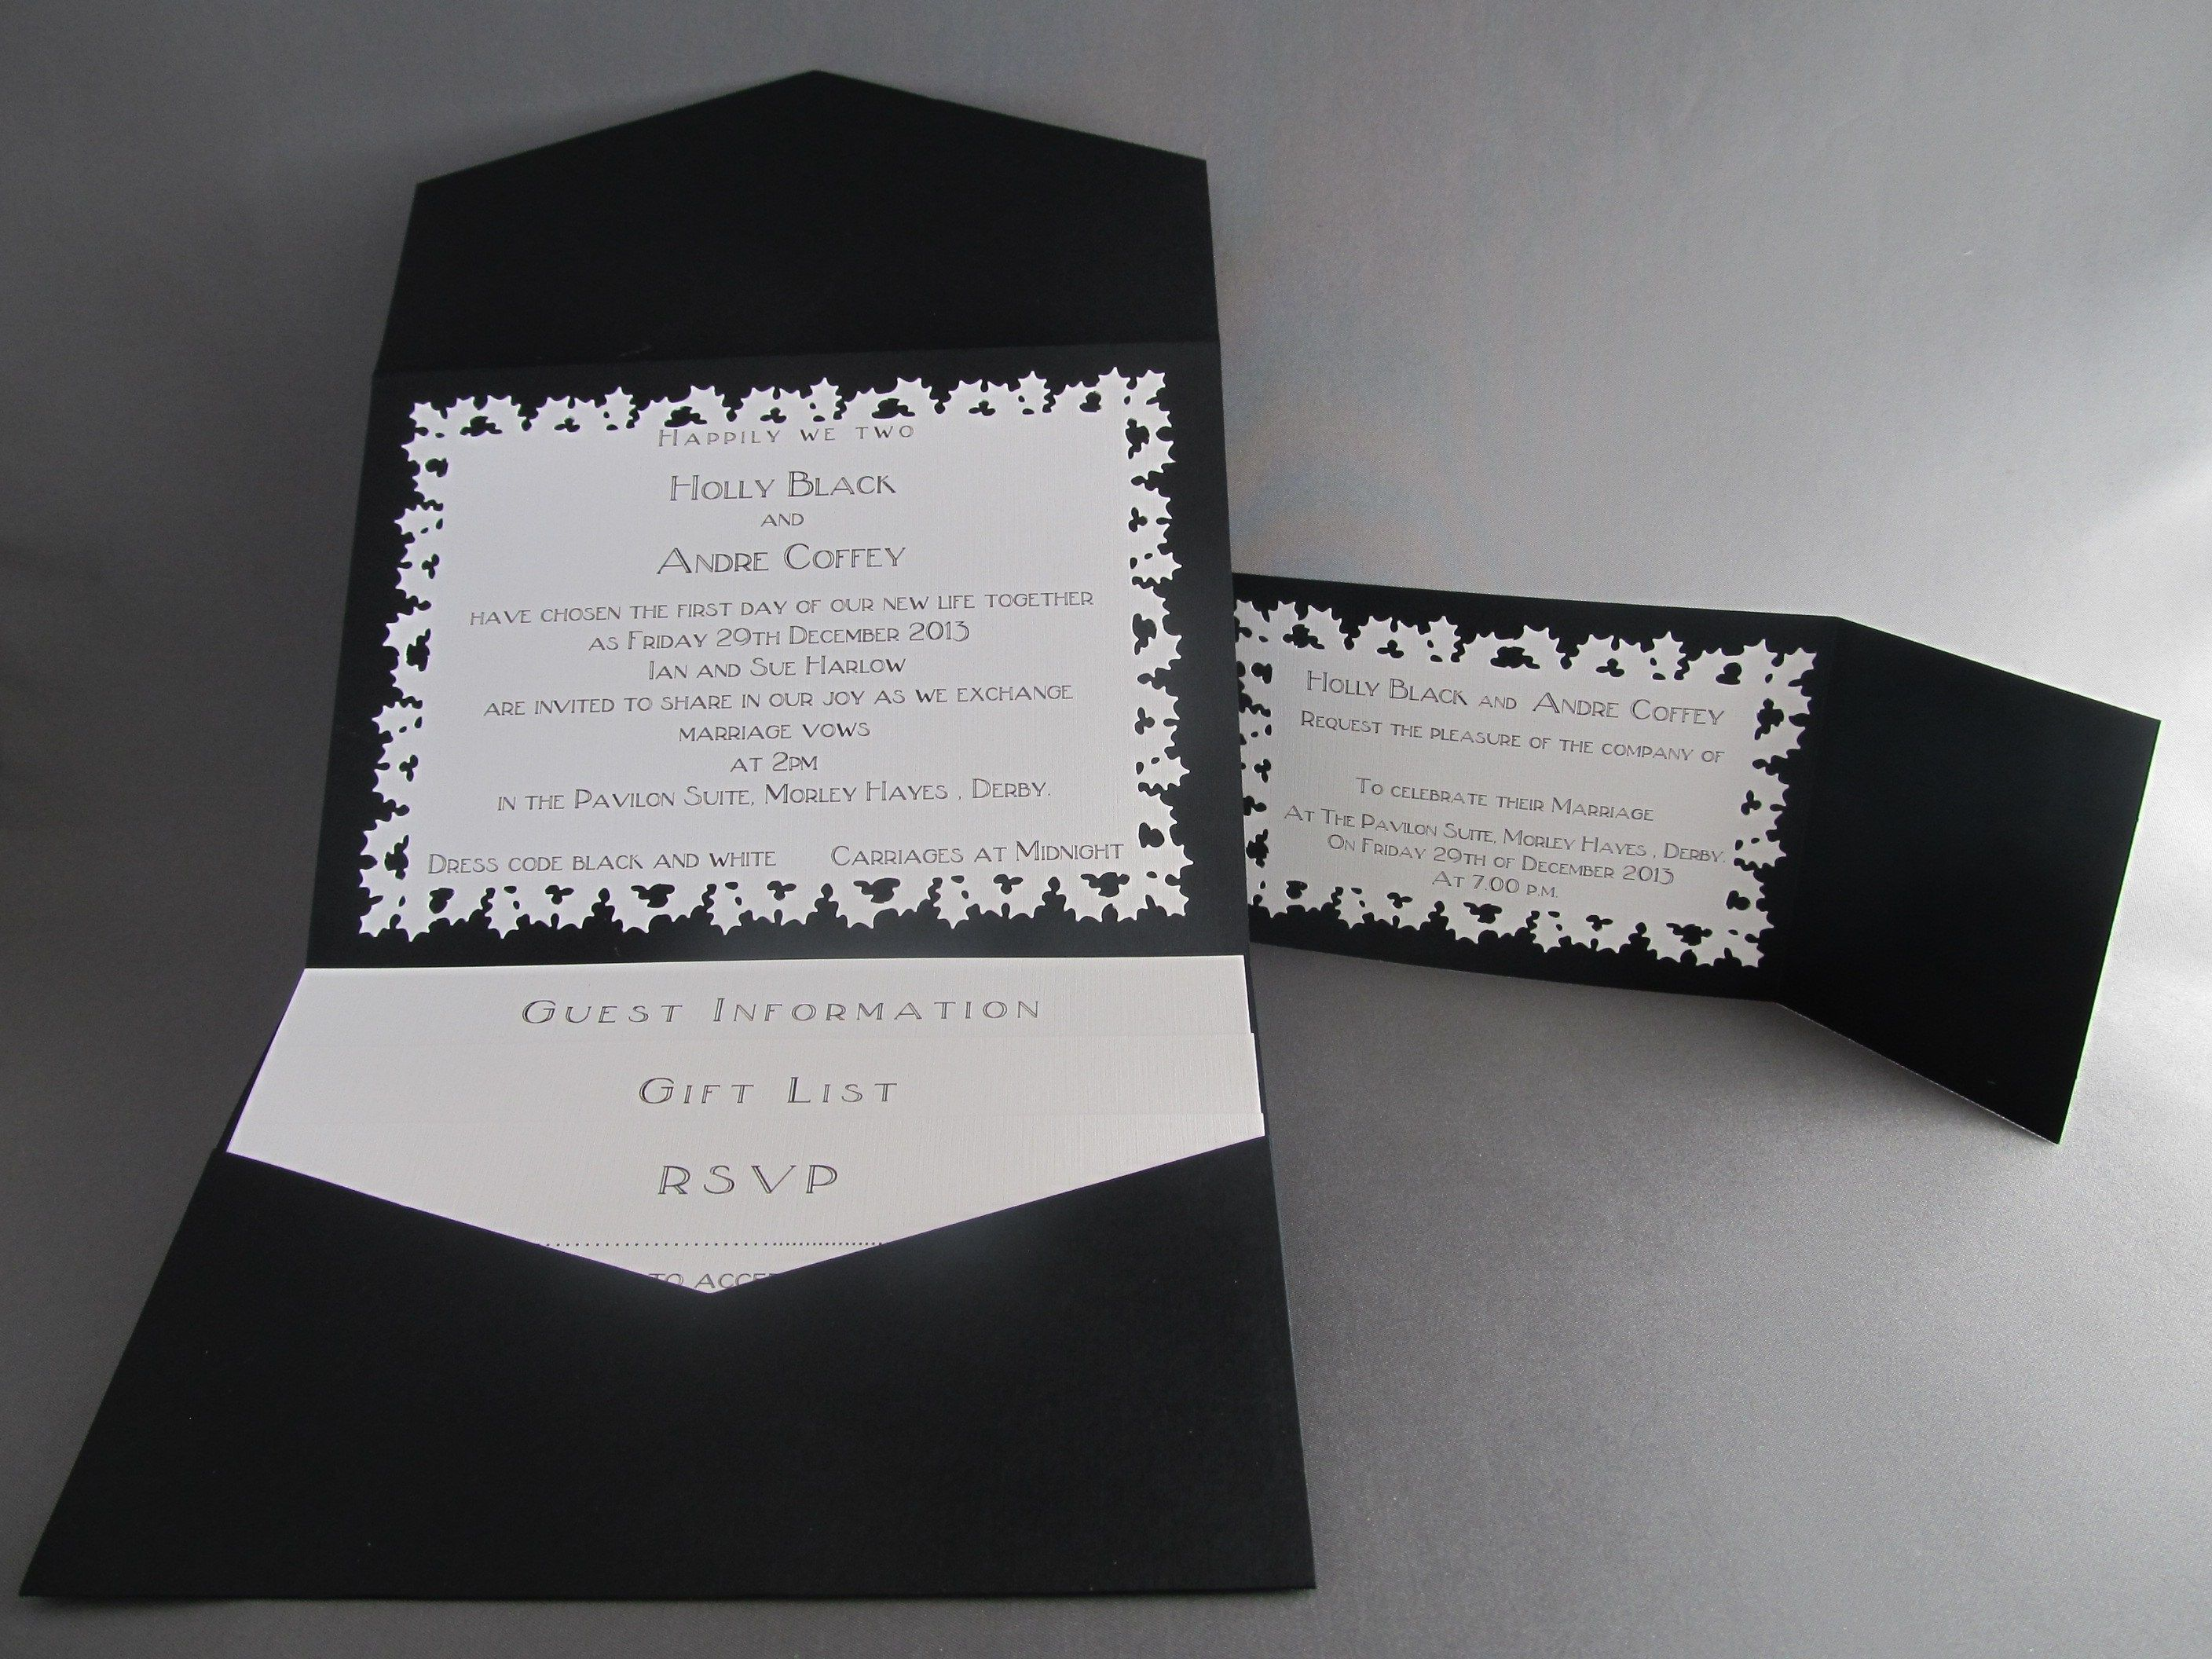 black and white wedding cards pinterest%0A Black    IMG         Christmas WeddingWhite WeddingsWedding InvitationsBlack